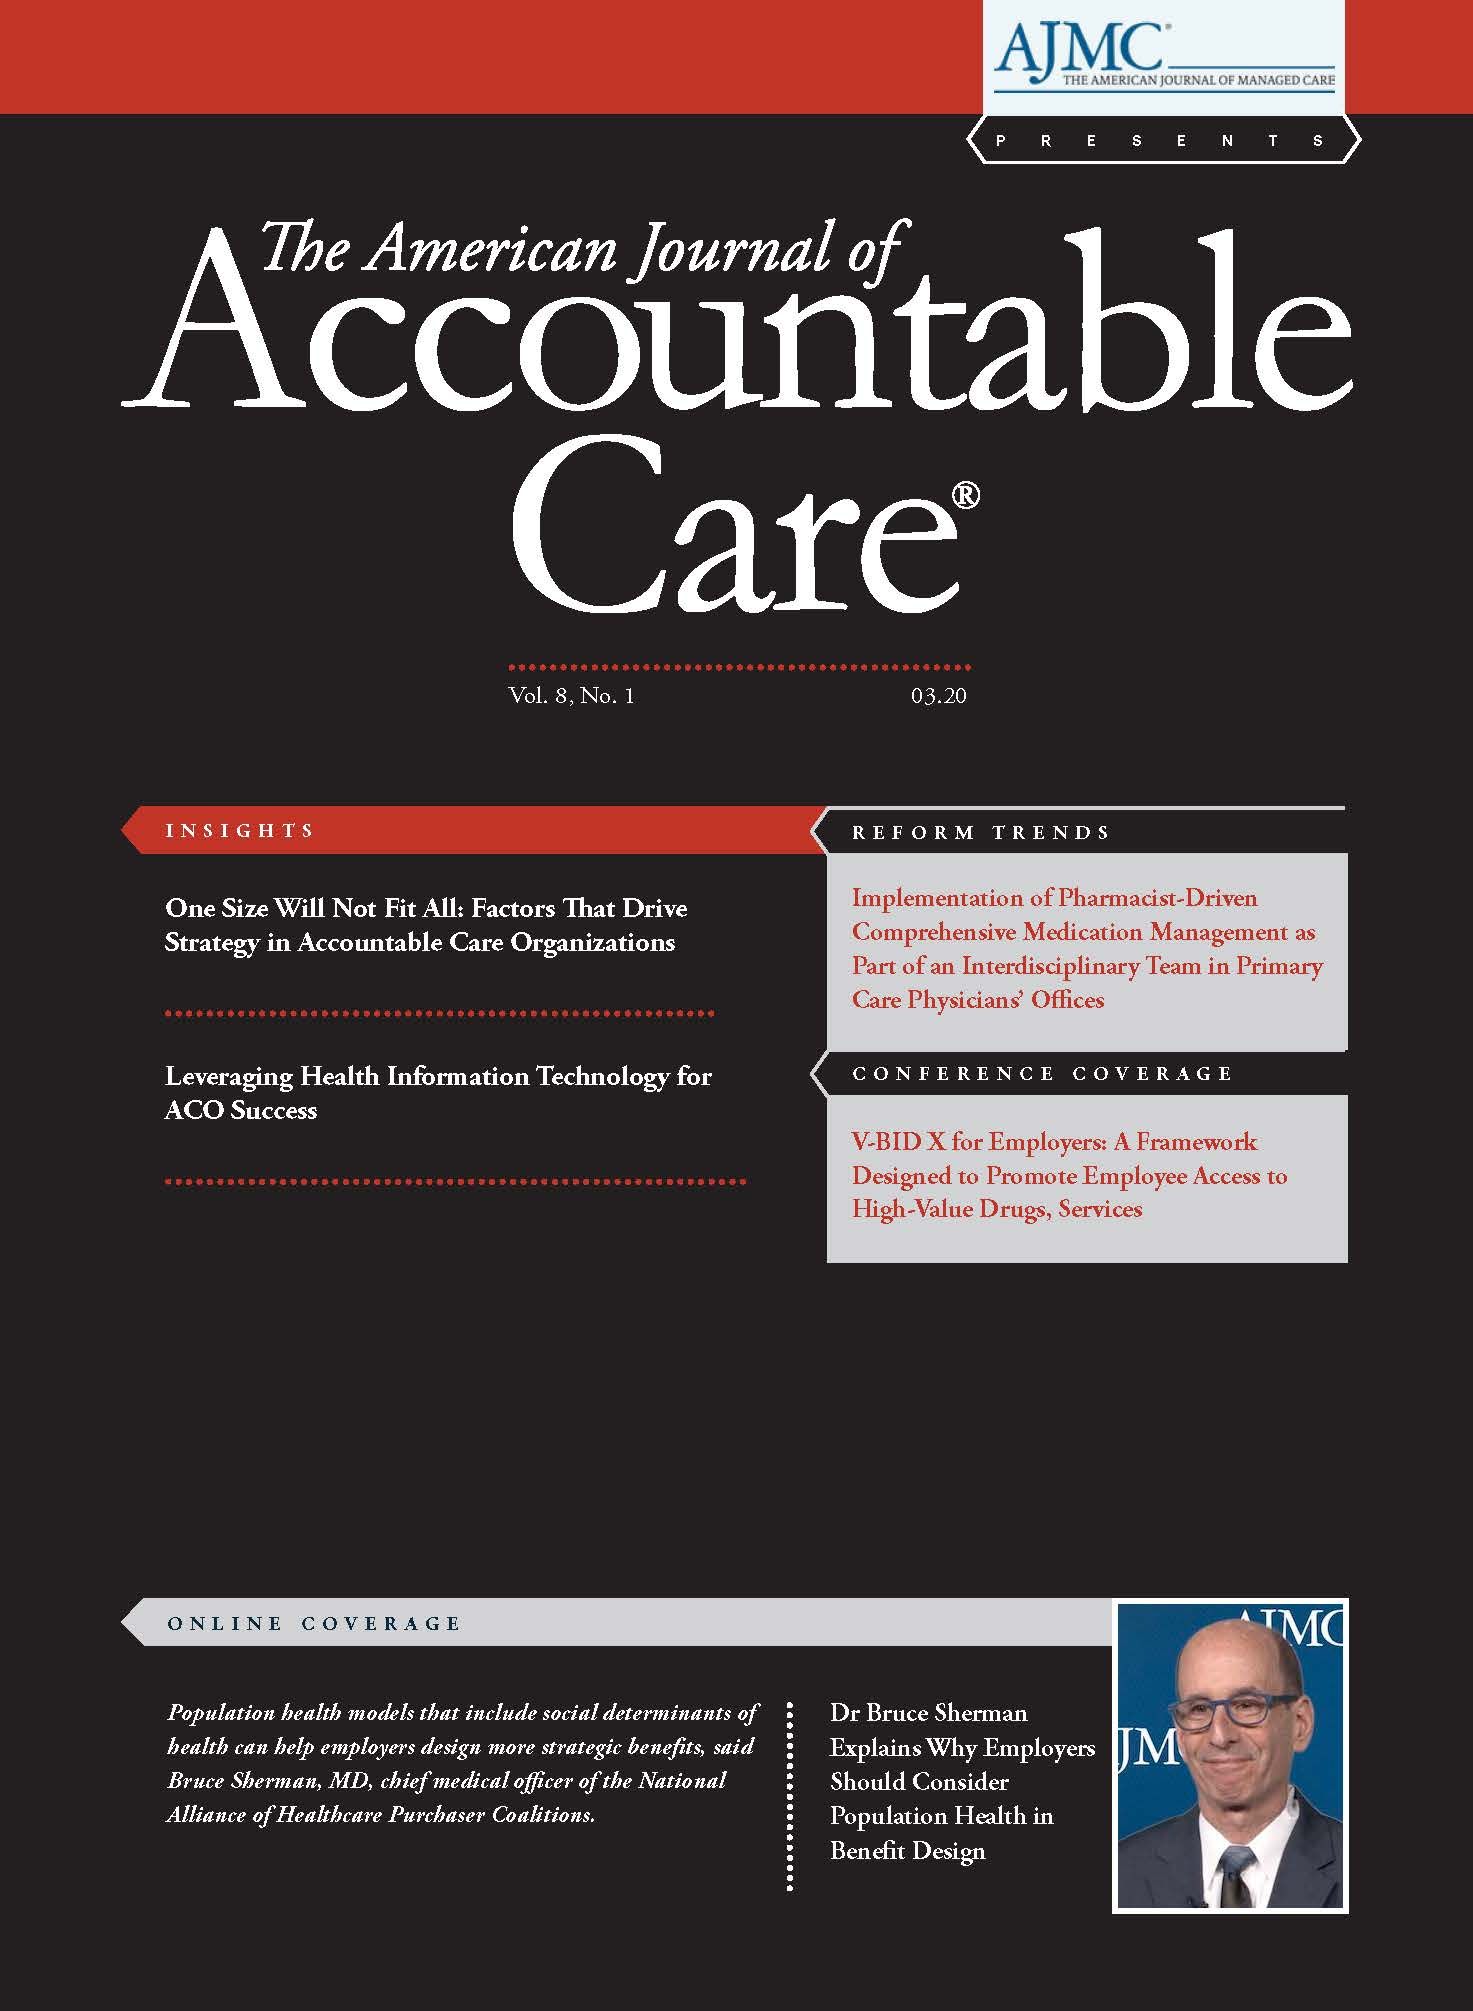 Cover of The American Journal of Accountable Care